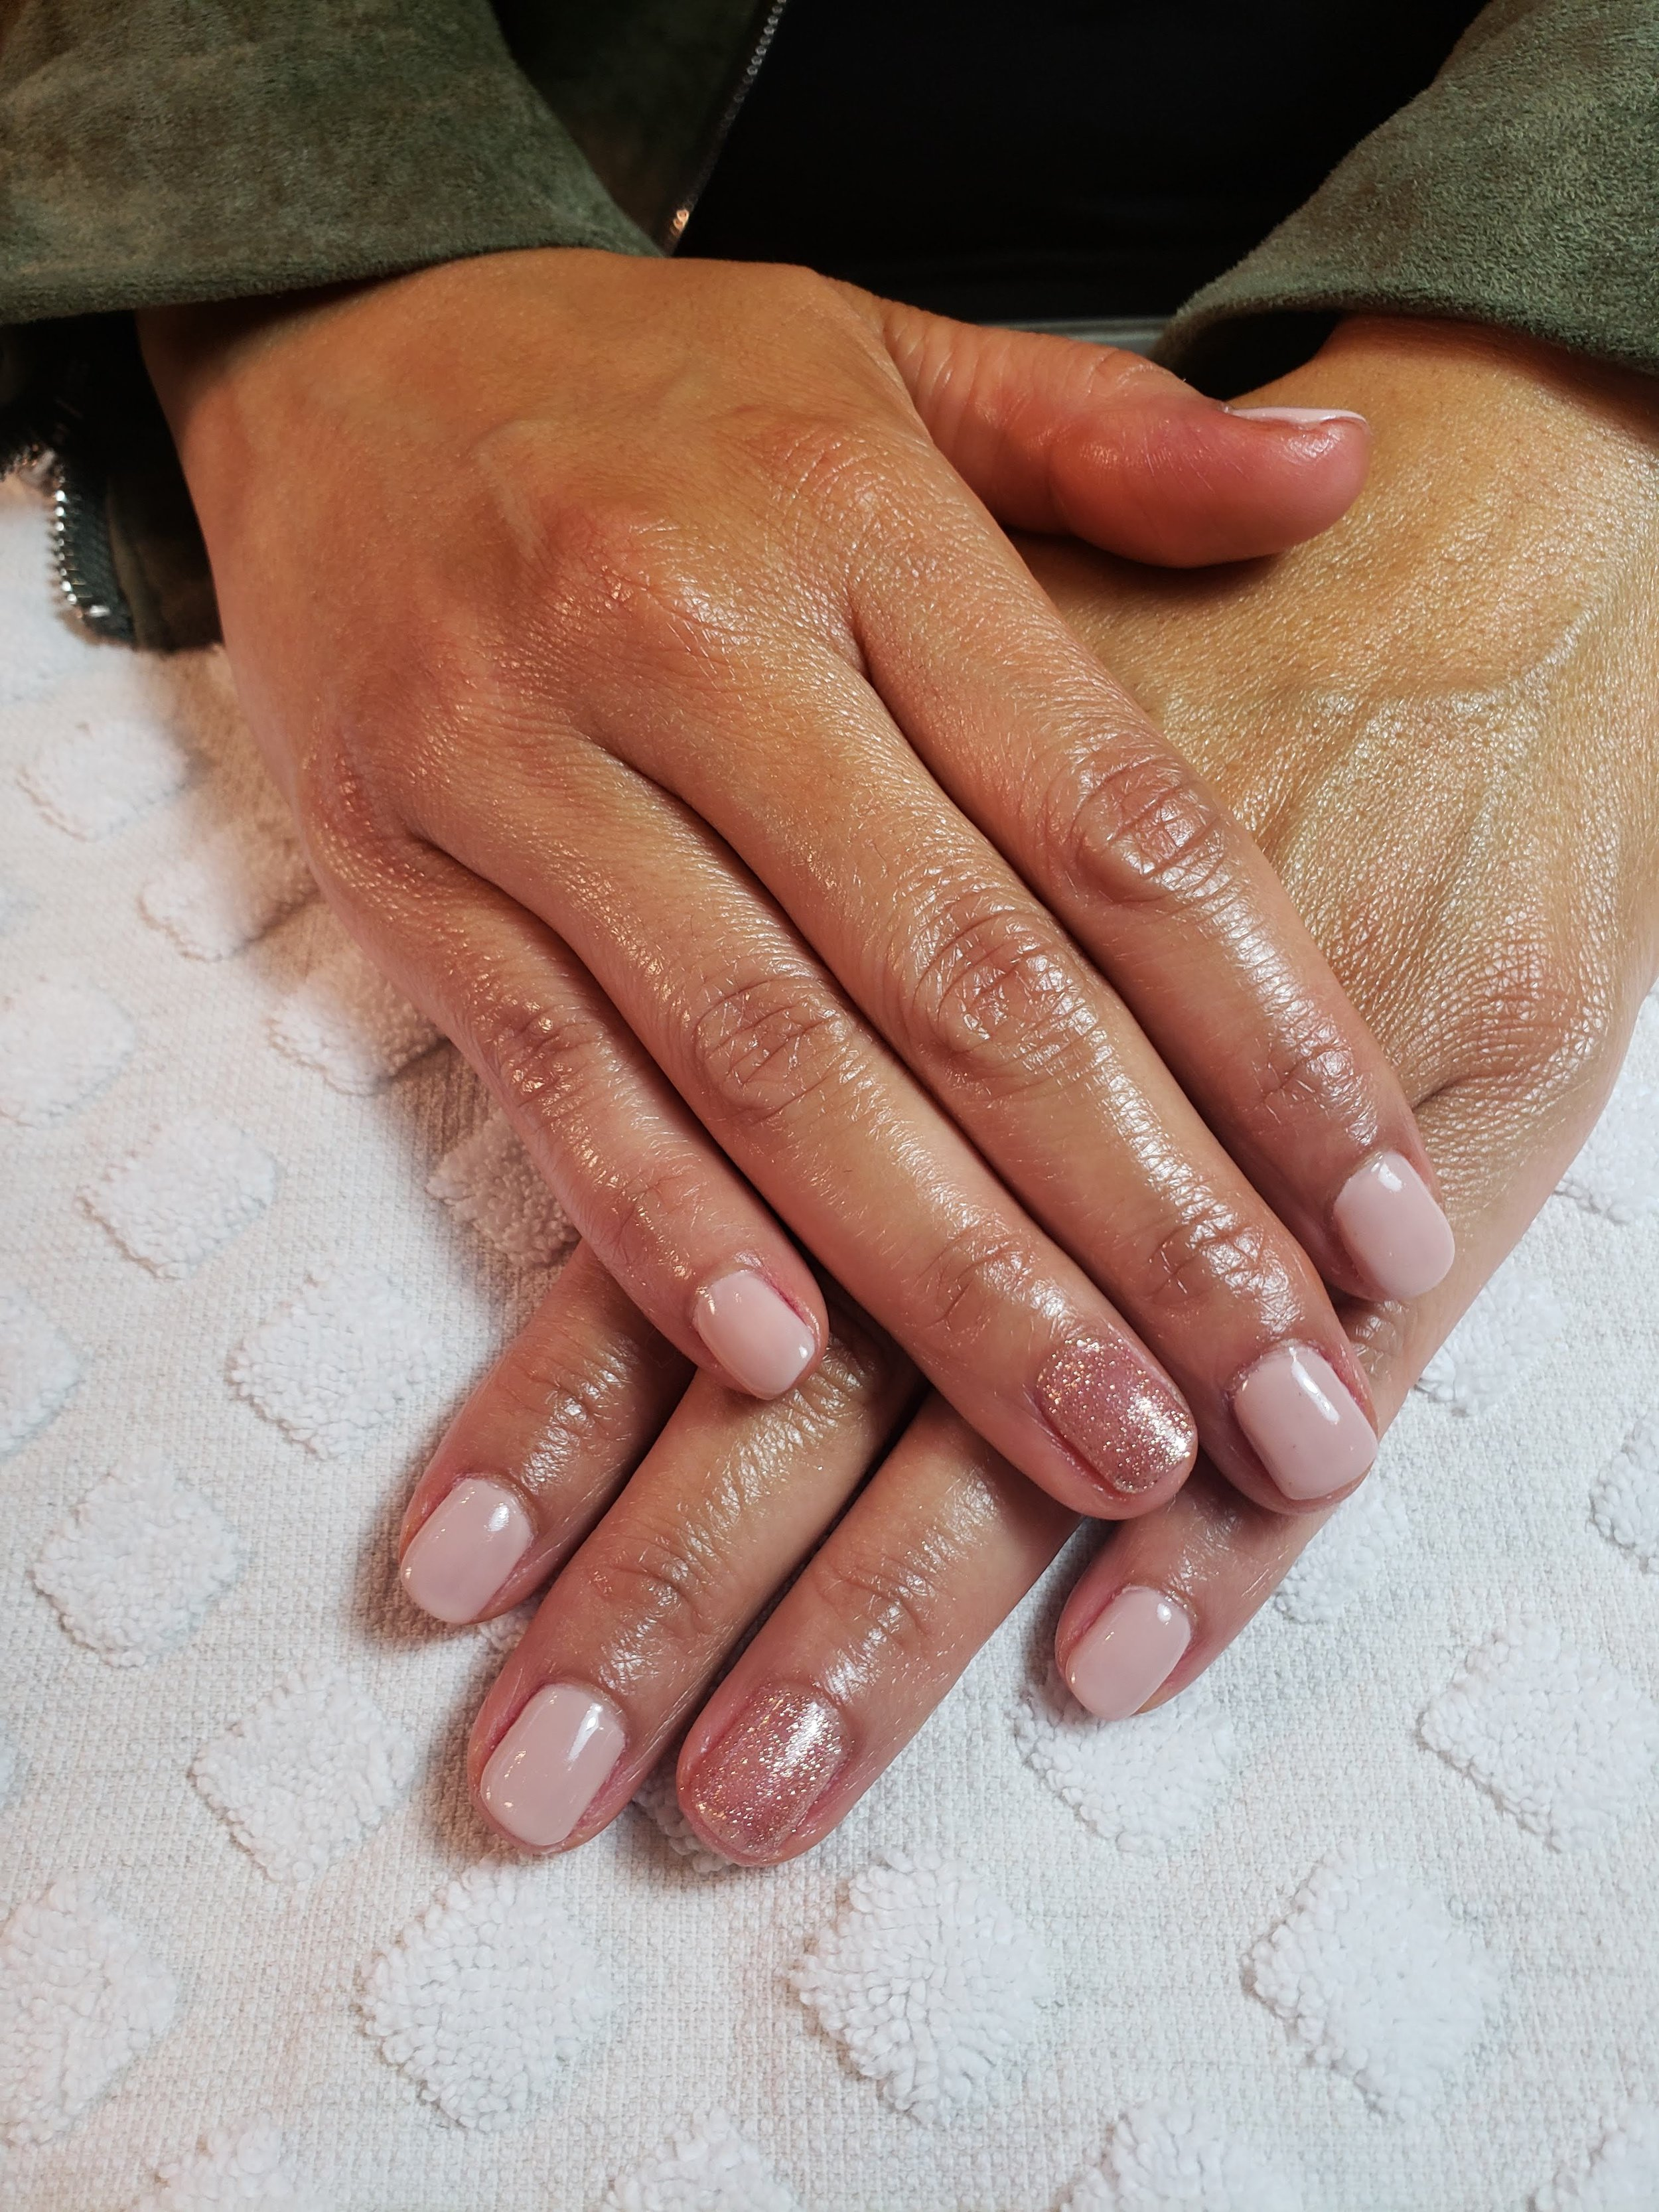 Glitter Nails, Accent Nail, Gel Mani, Best in Bend, BioSculpture Gel, Shellac, Bridal, Modern,